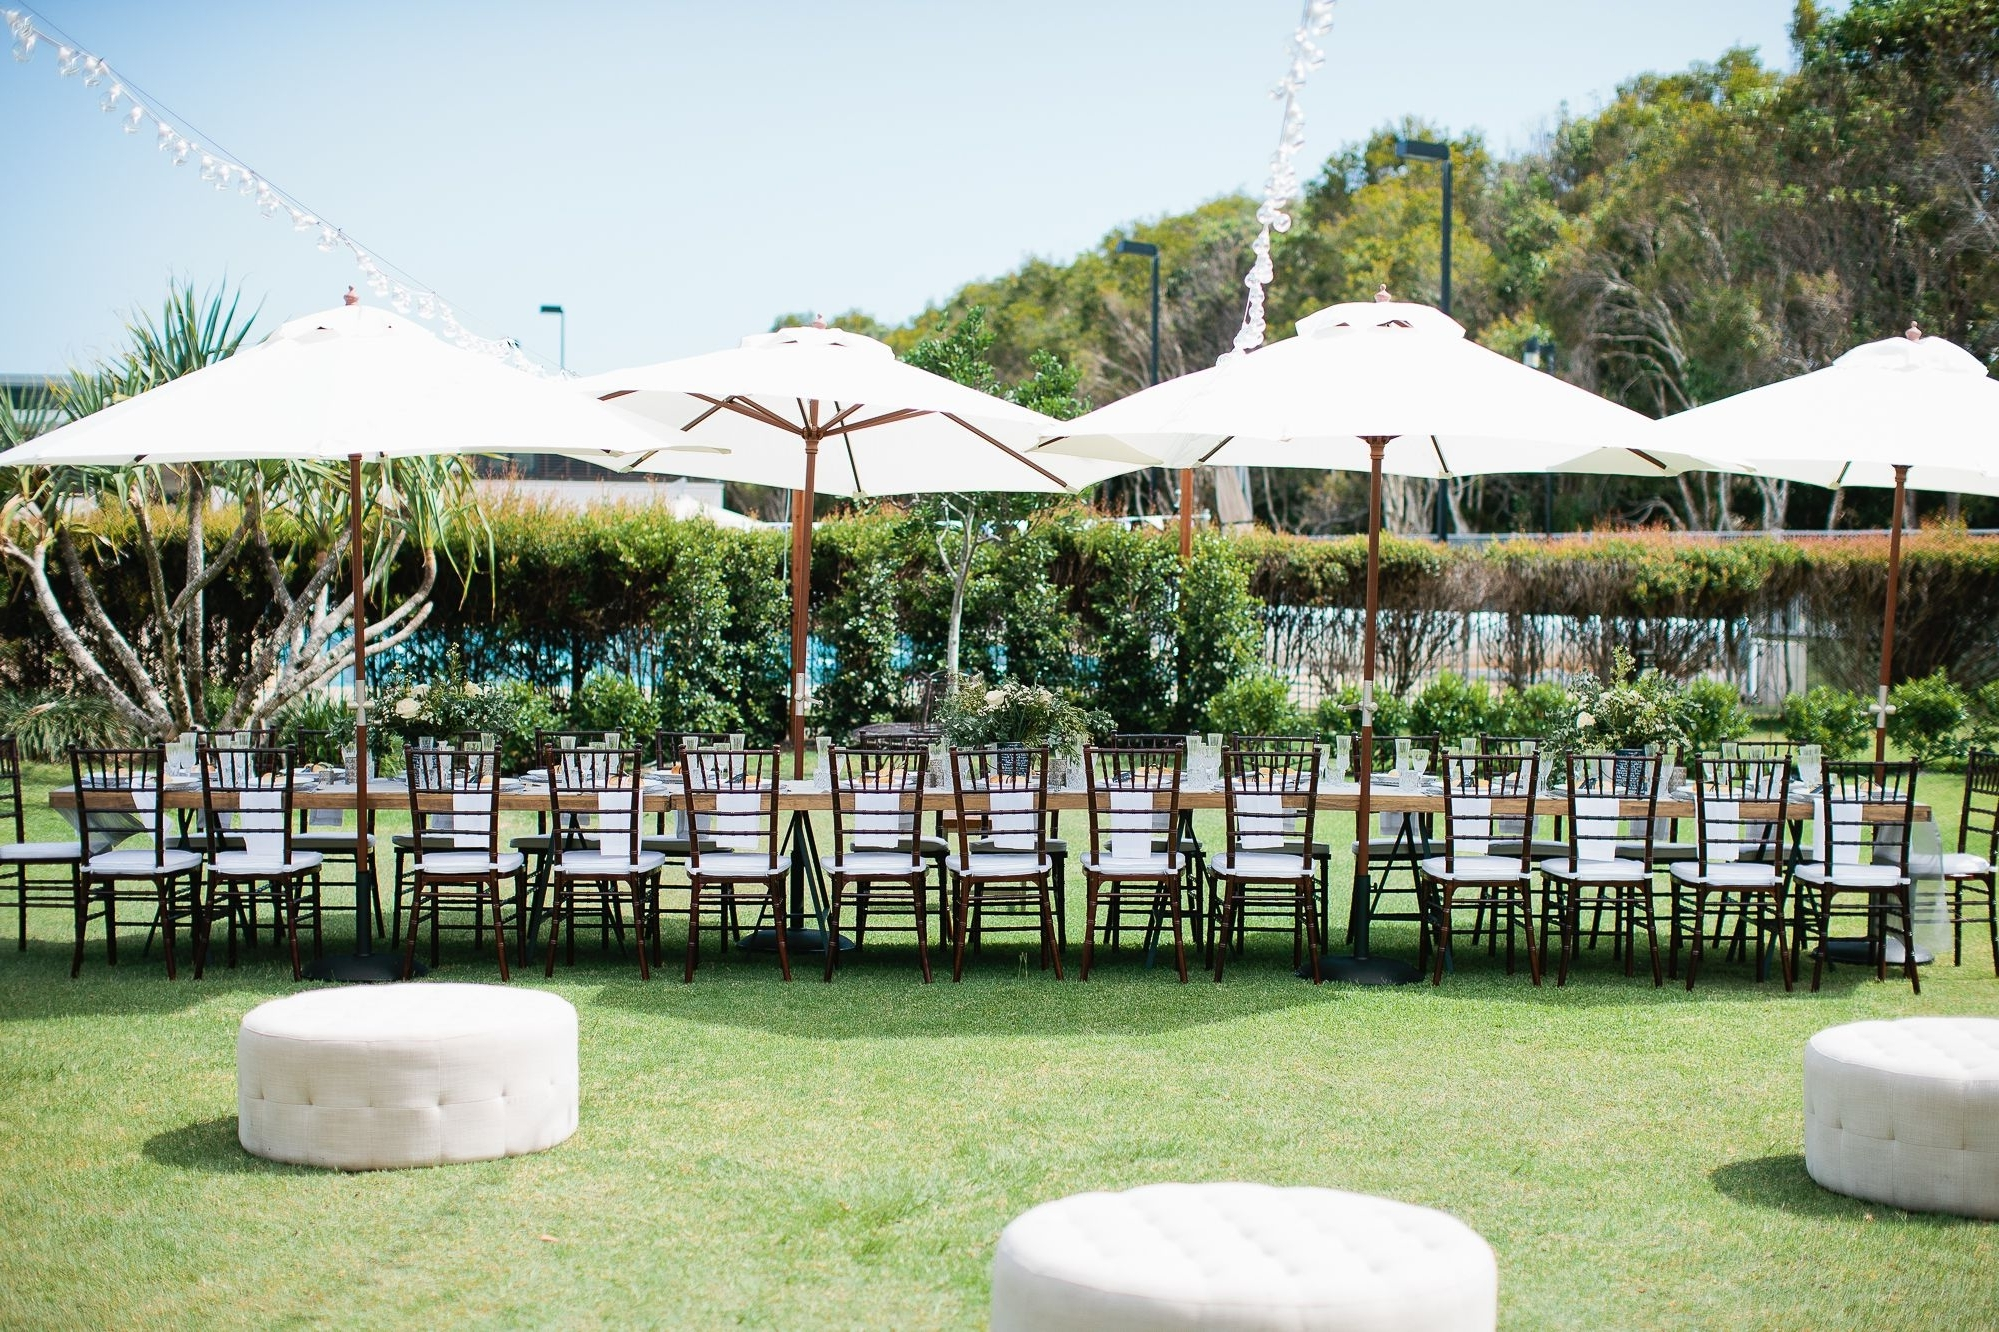 Gold Coast Patio Umbrellas Throughout Most Current Hampton Event Hire // White Market Umbrellas / Long Wooden Dining (Gallery 15 of 20)